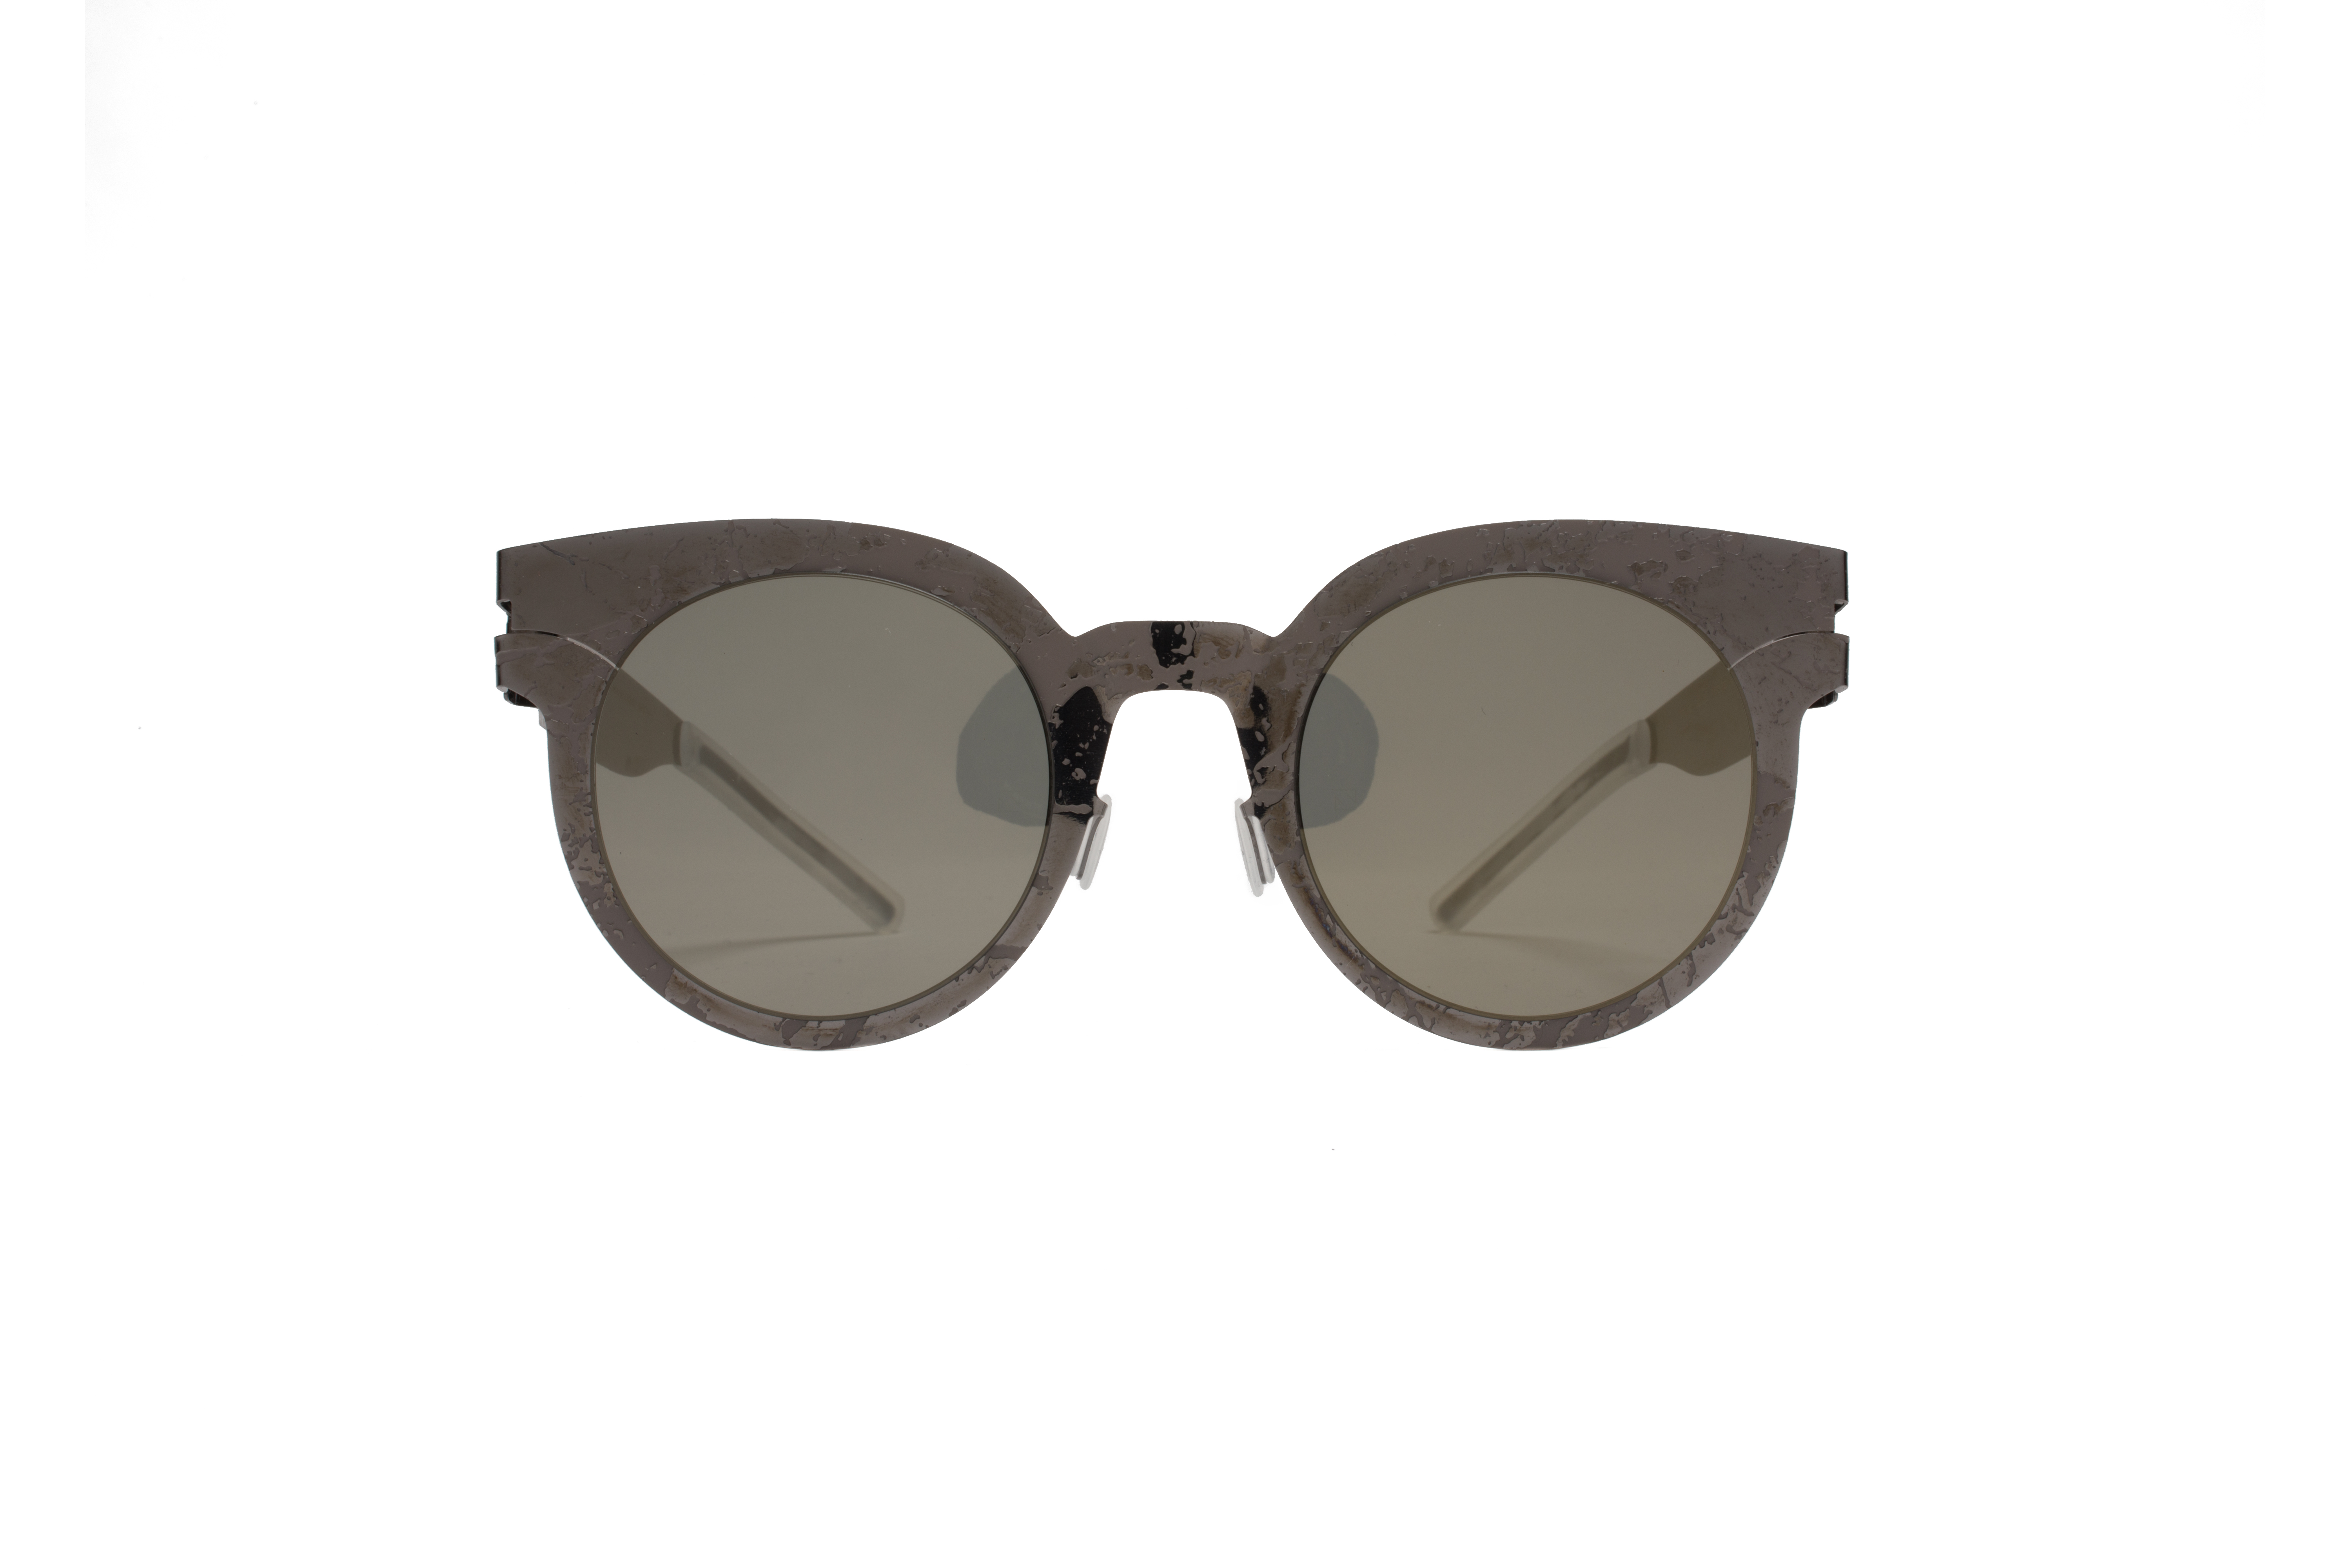 MYKITA Mm Sun Mmtransfer001 Graphite Molegrey St5707c1c3dd382